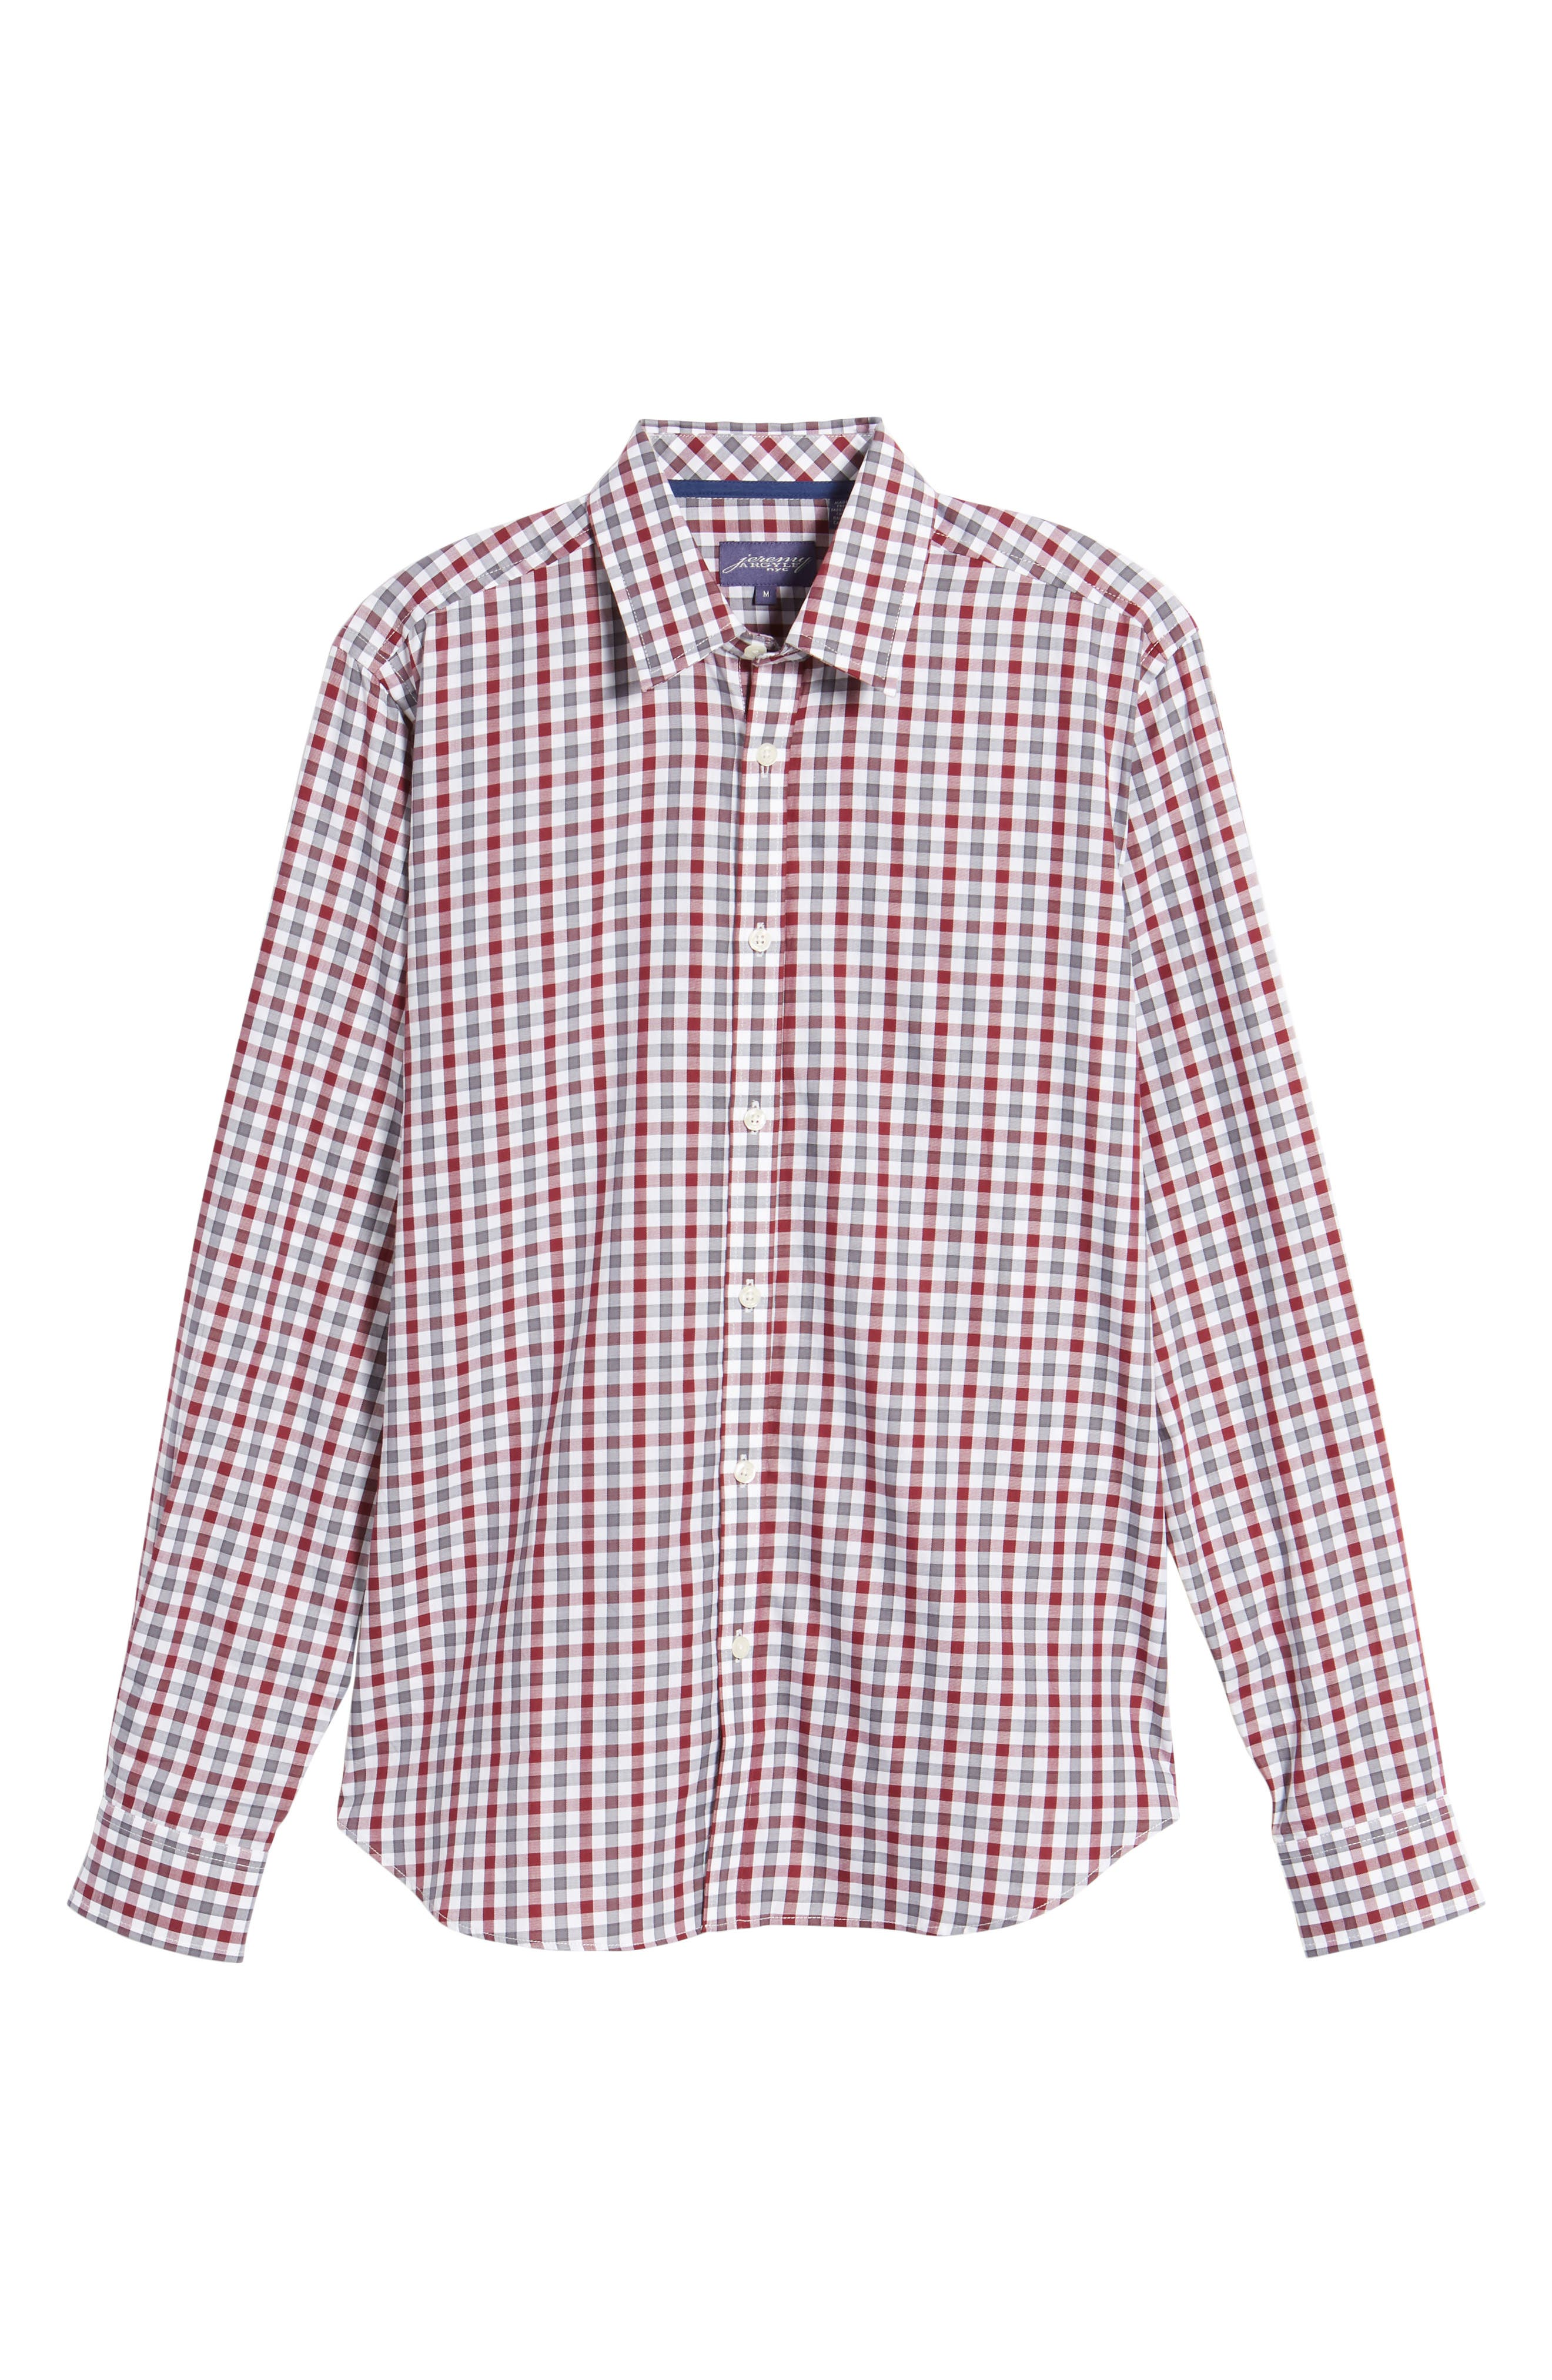 Fitted Check Sport Shirt,                             Alternate thumbnail 6, color,                             Dark Red